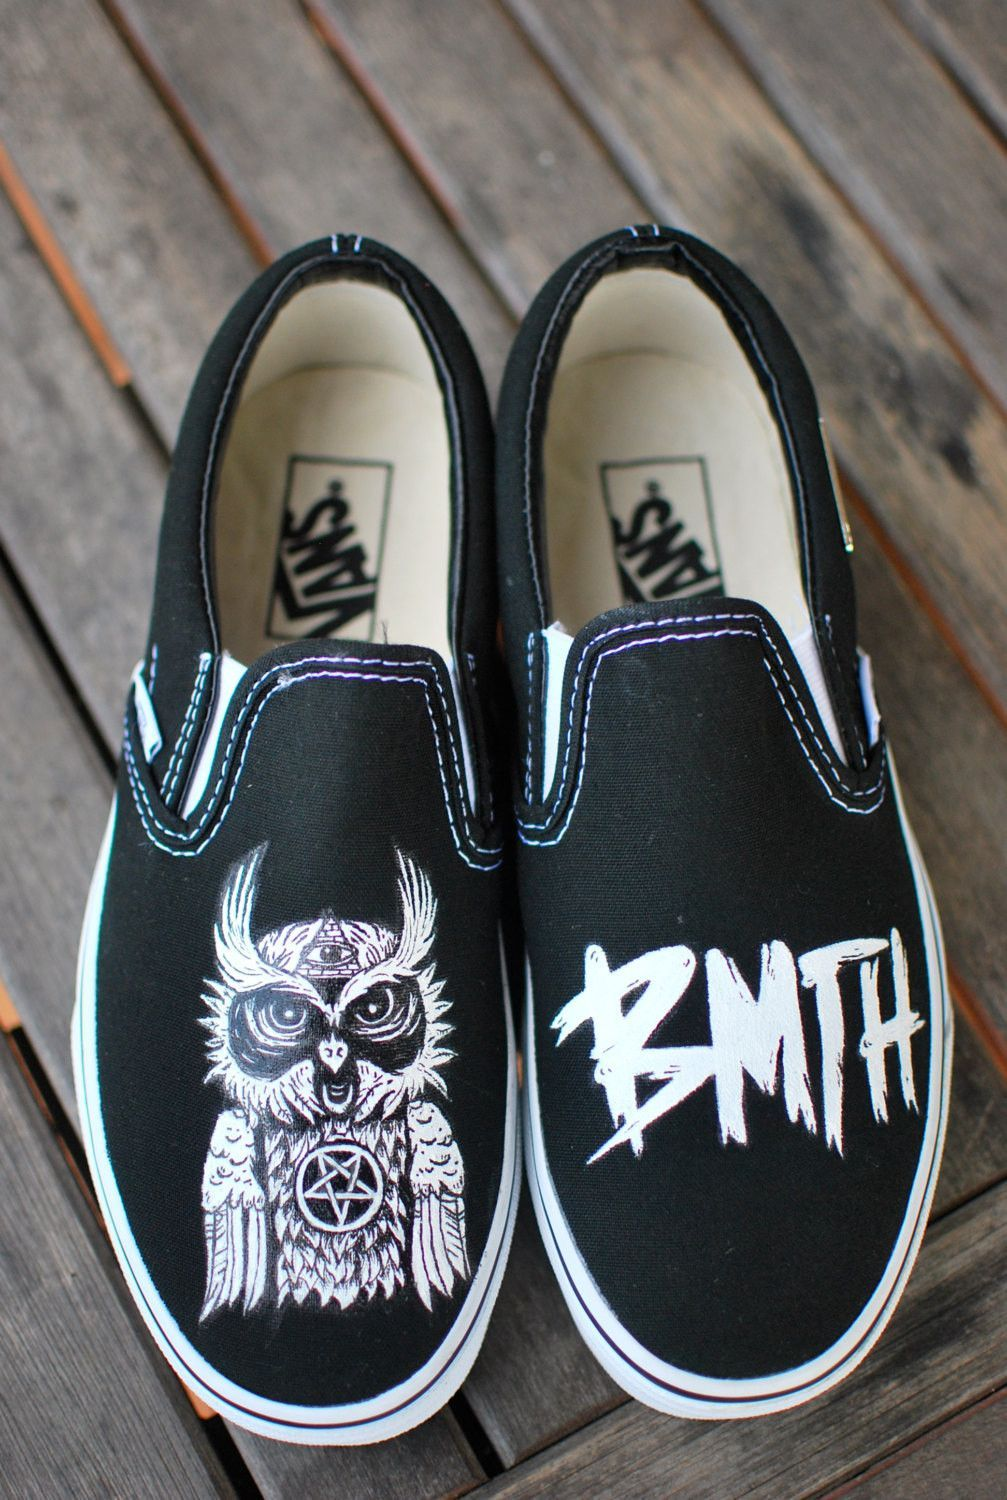 BMTH Owl Vans slipons by BStreetShoes